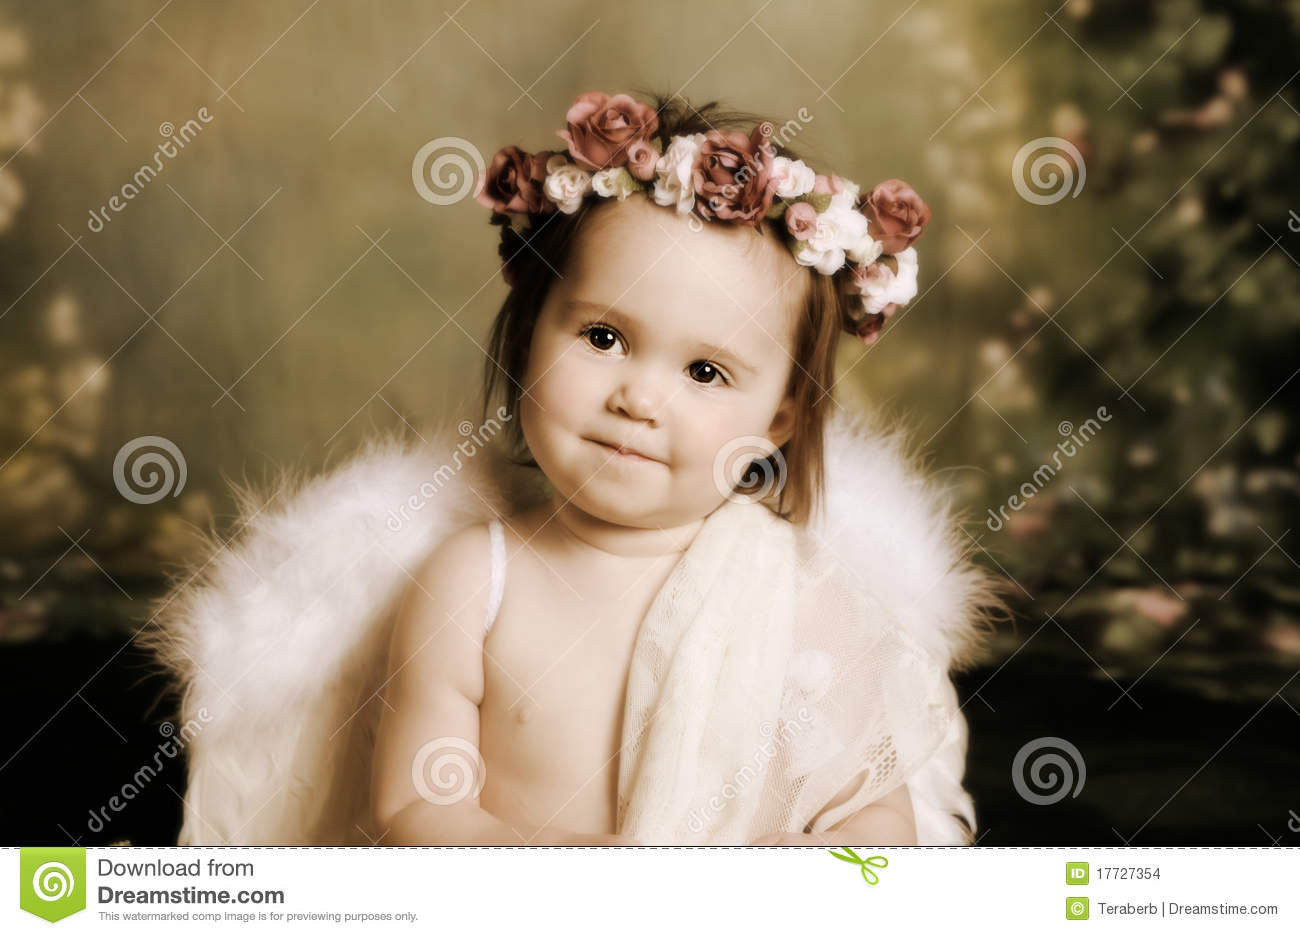 Cute Baby Girl Child Wallpaper Sweet Baby Angel Stock Photo Image Of Aroma Artificial